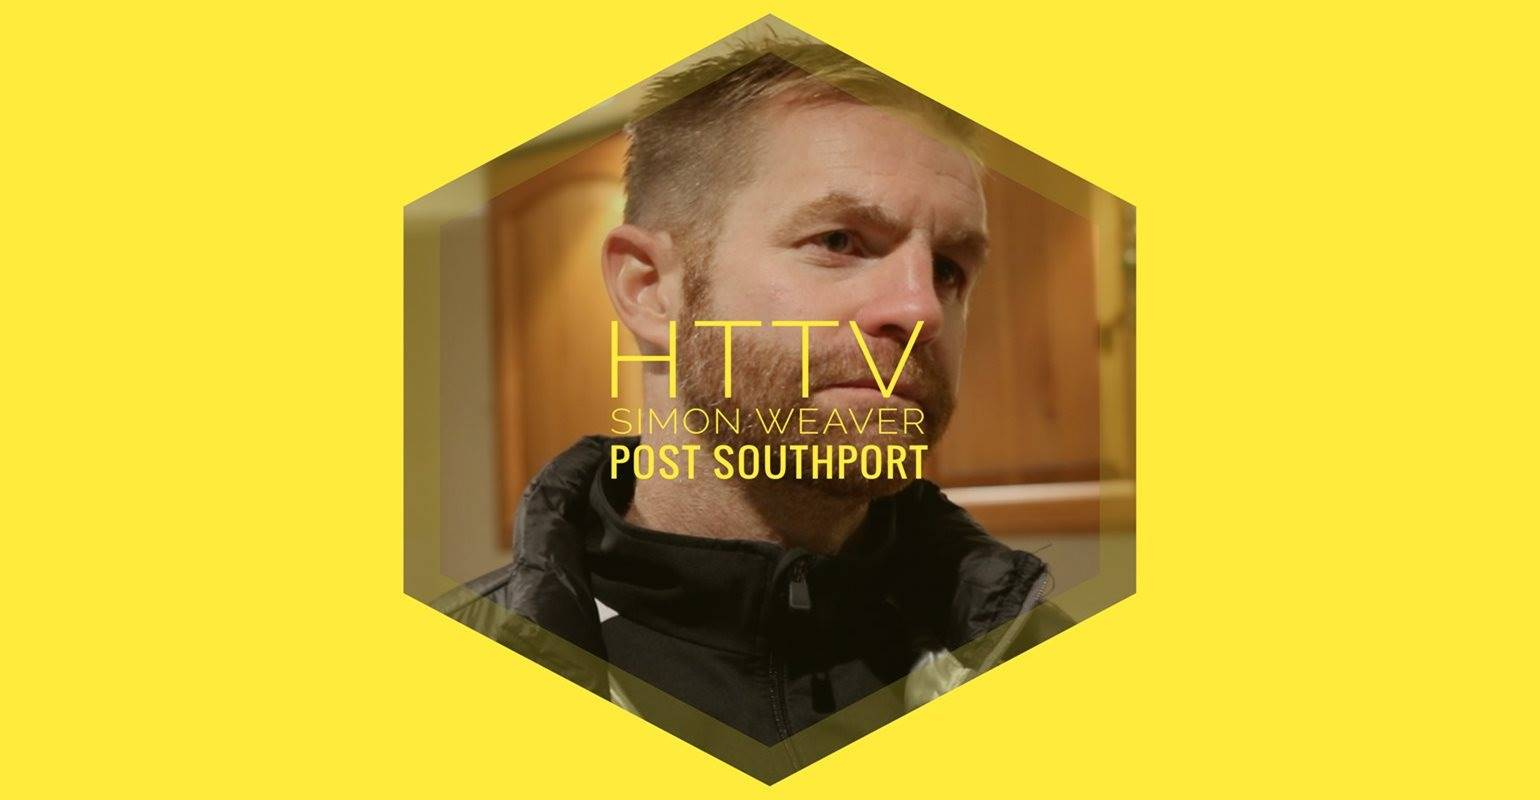 HTTV | Simon Weaver Post Southport